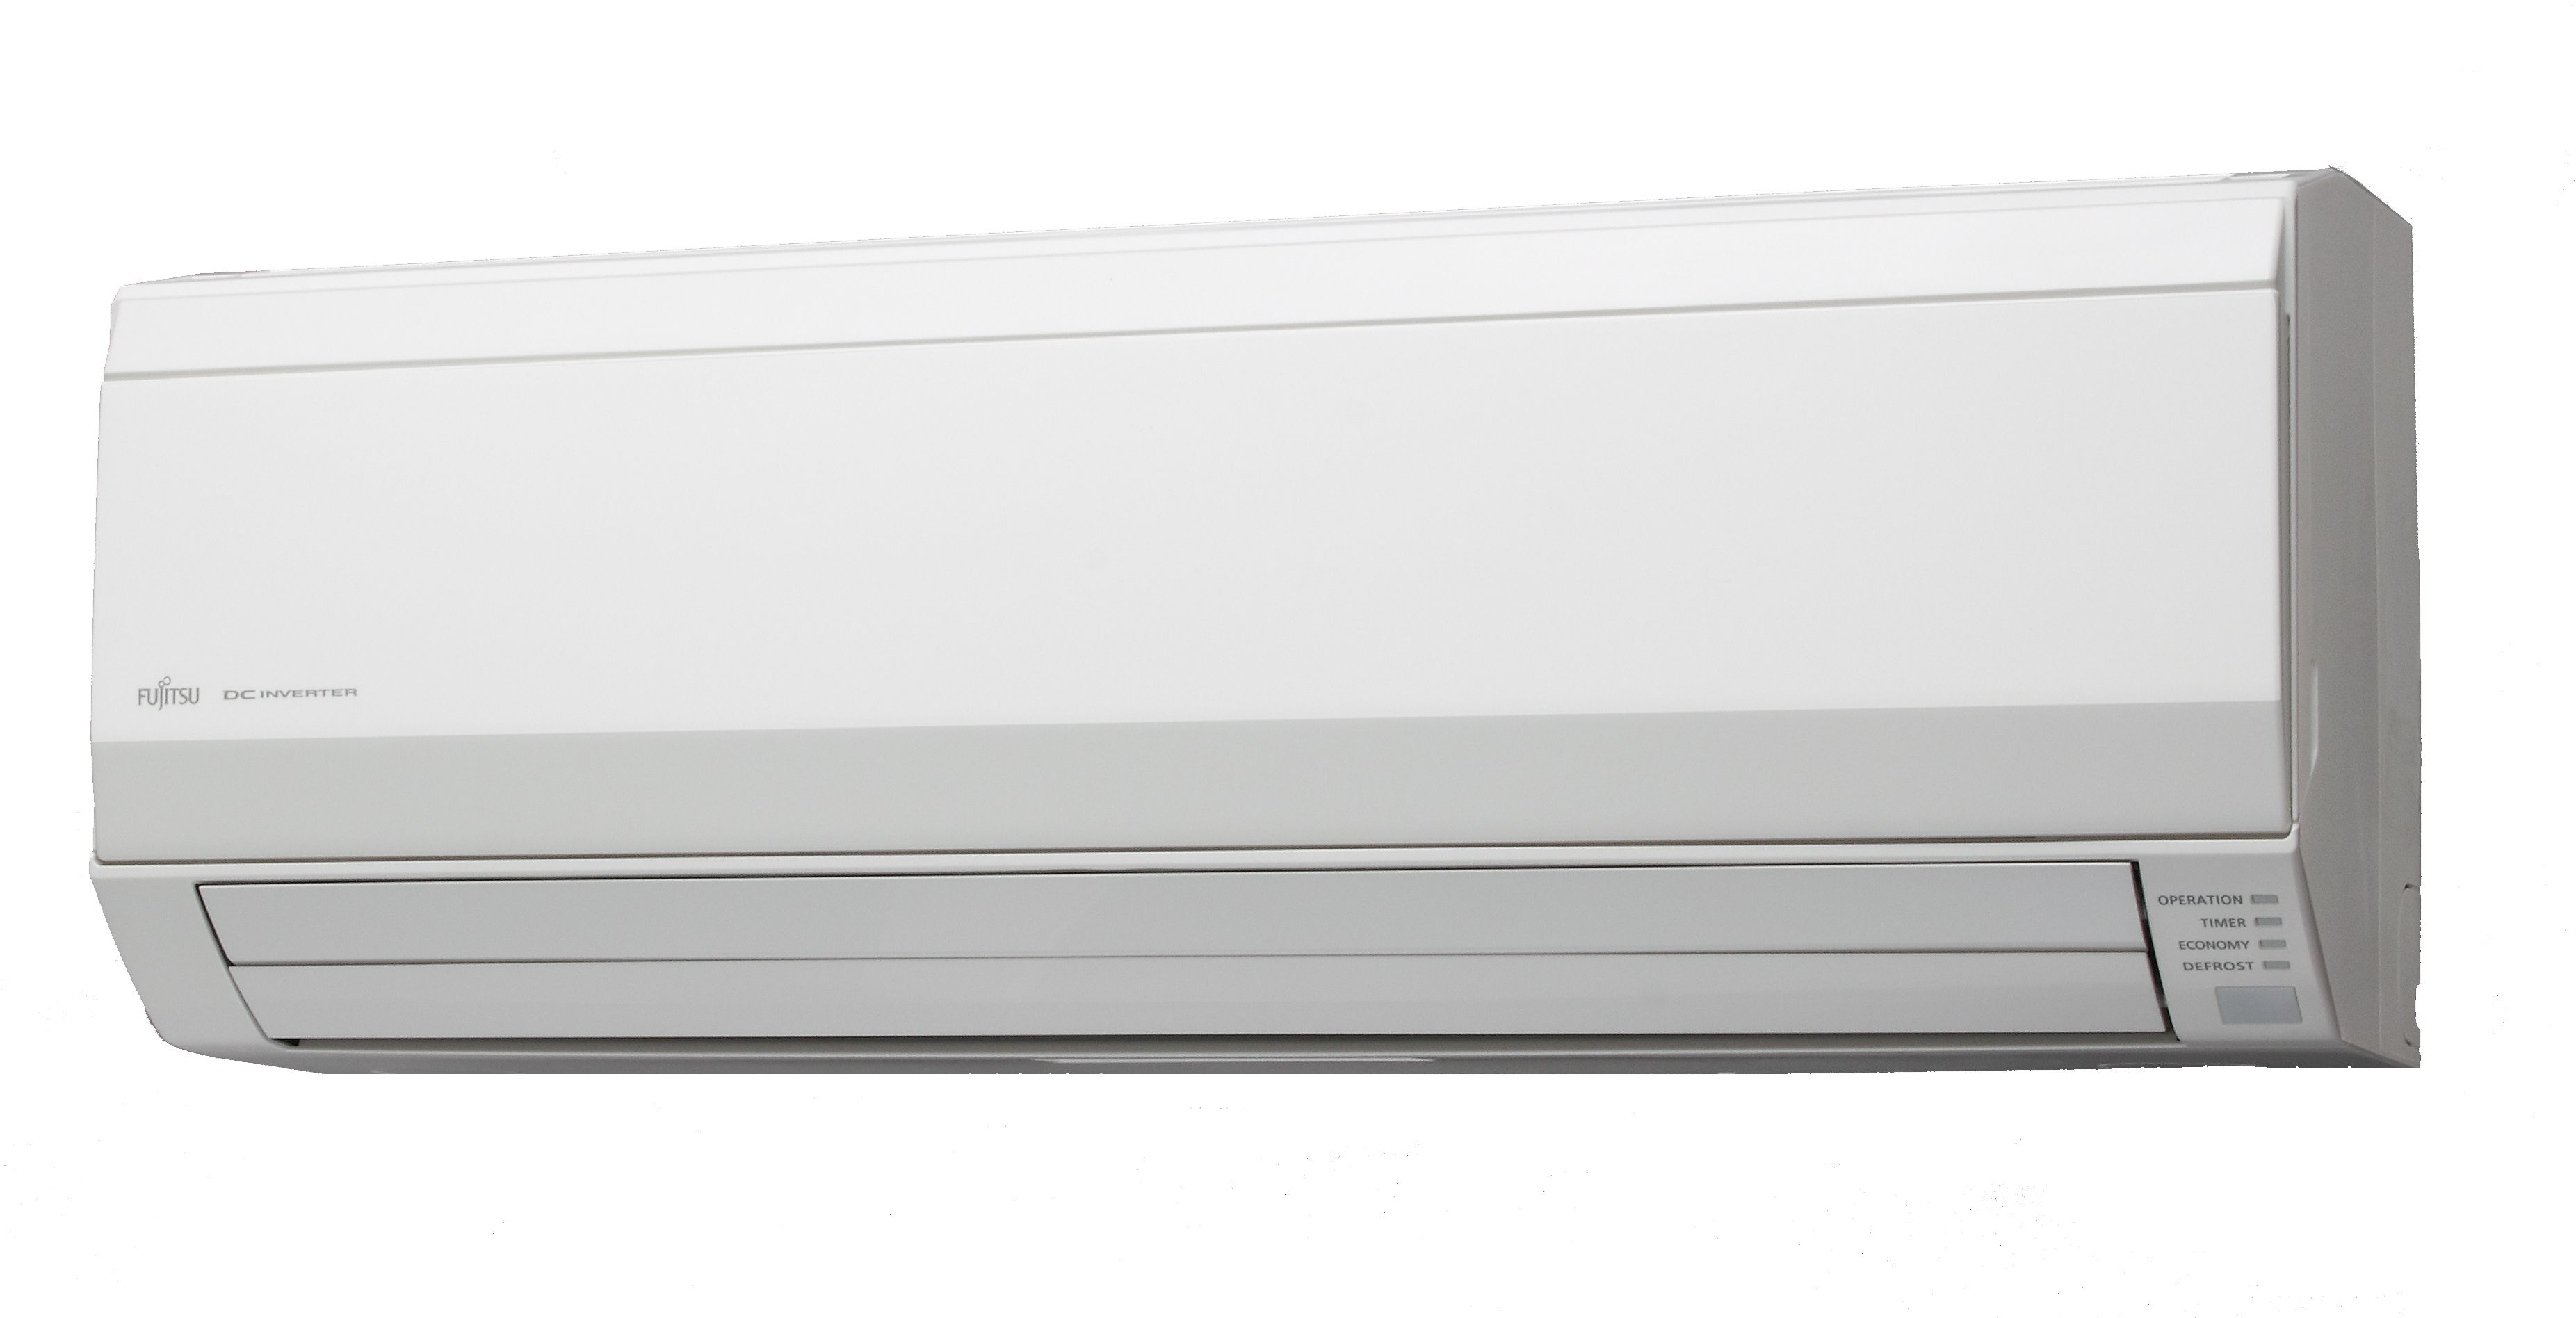 Pin by The Vac Store on Daikin Heating & Cooling Heat